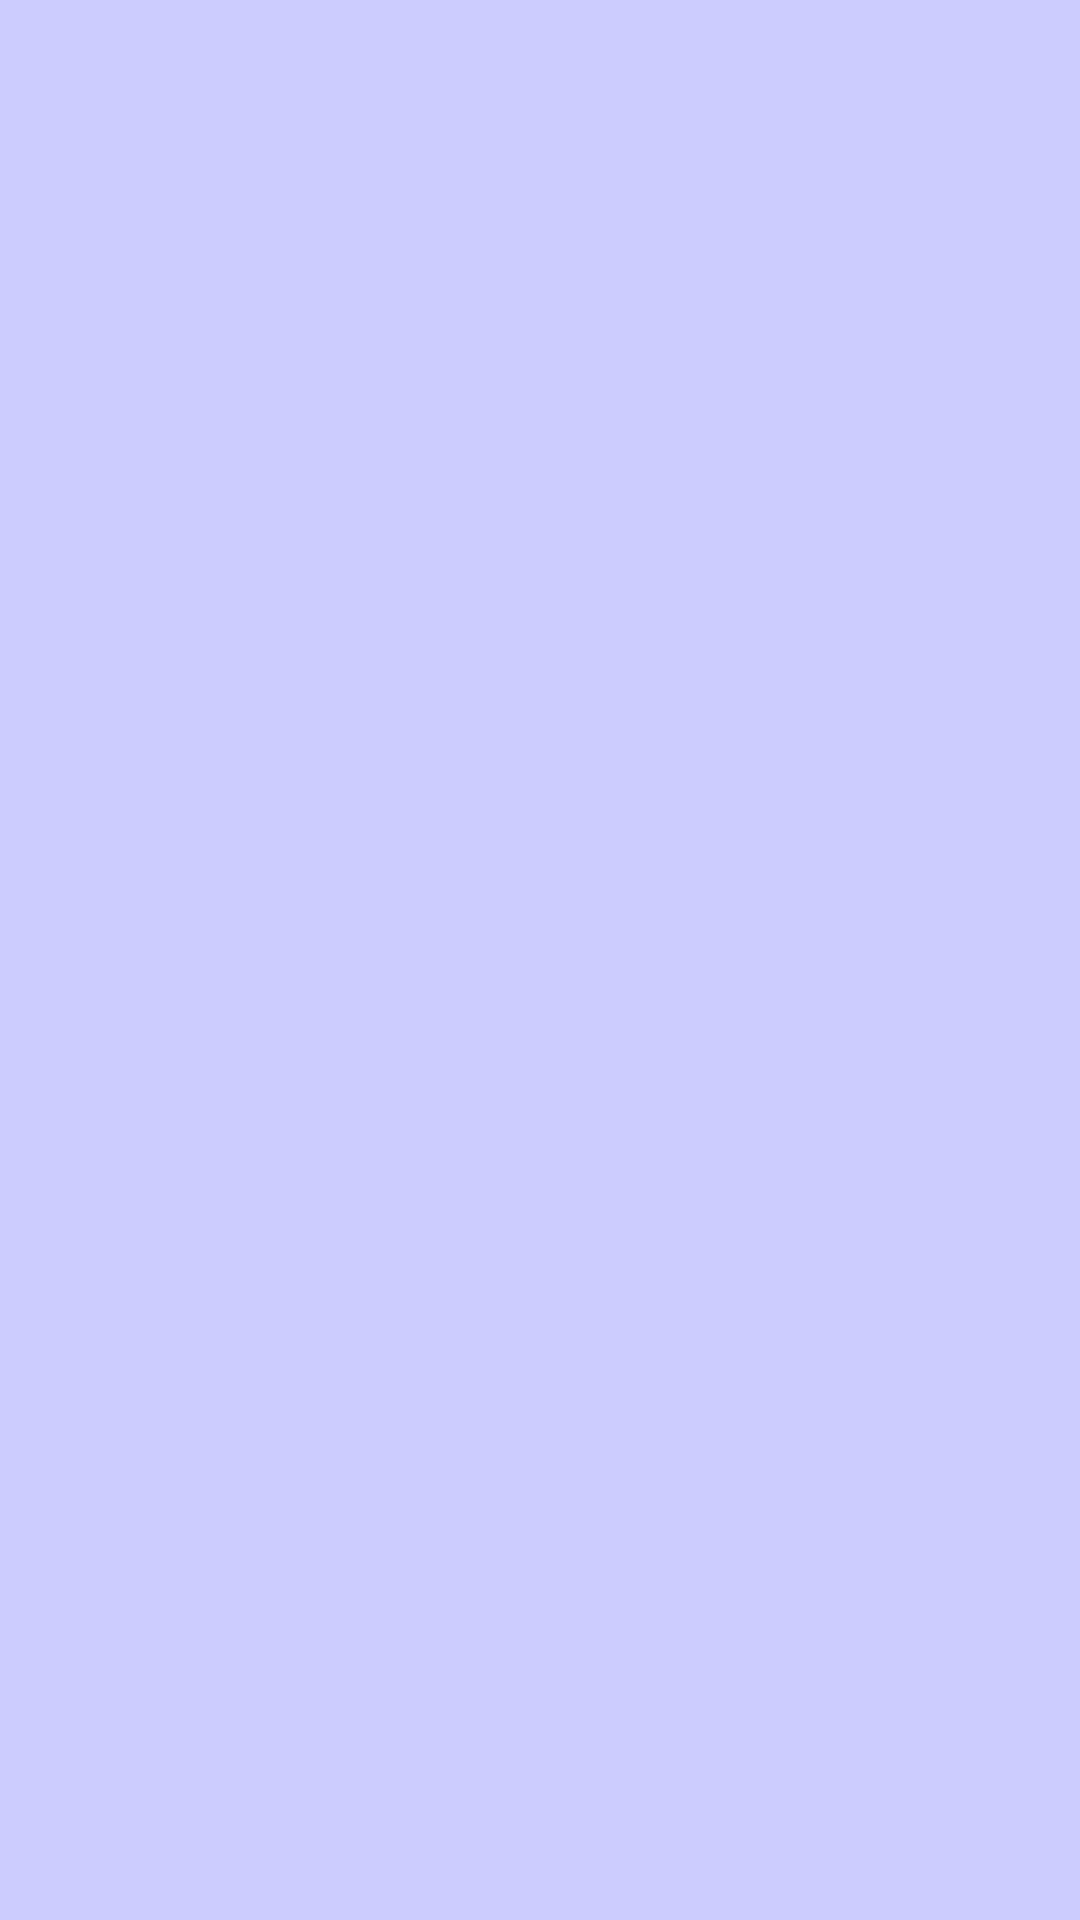 1080x1920 Lavender Blue Solid Color Background